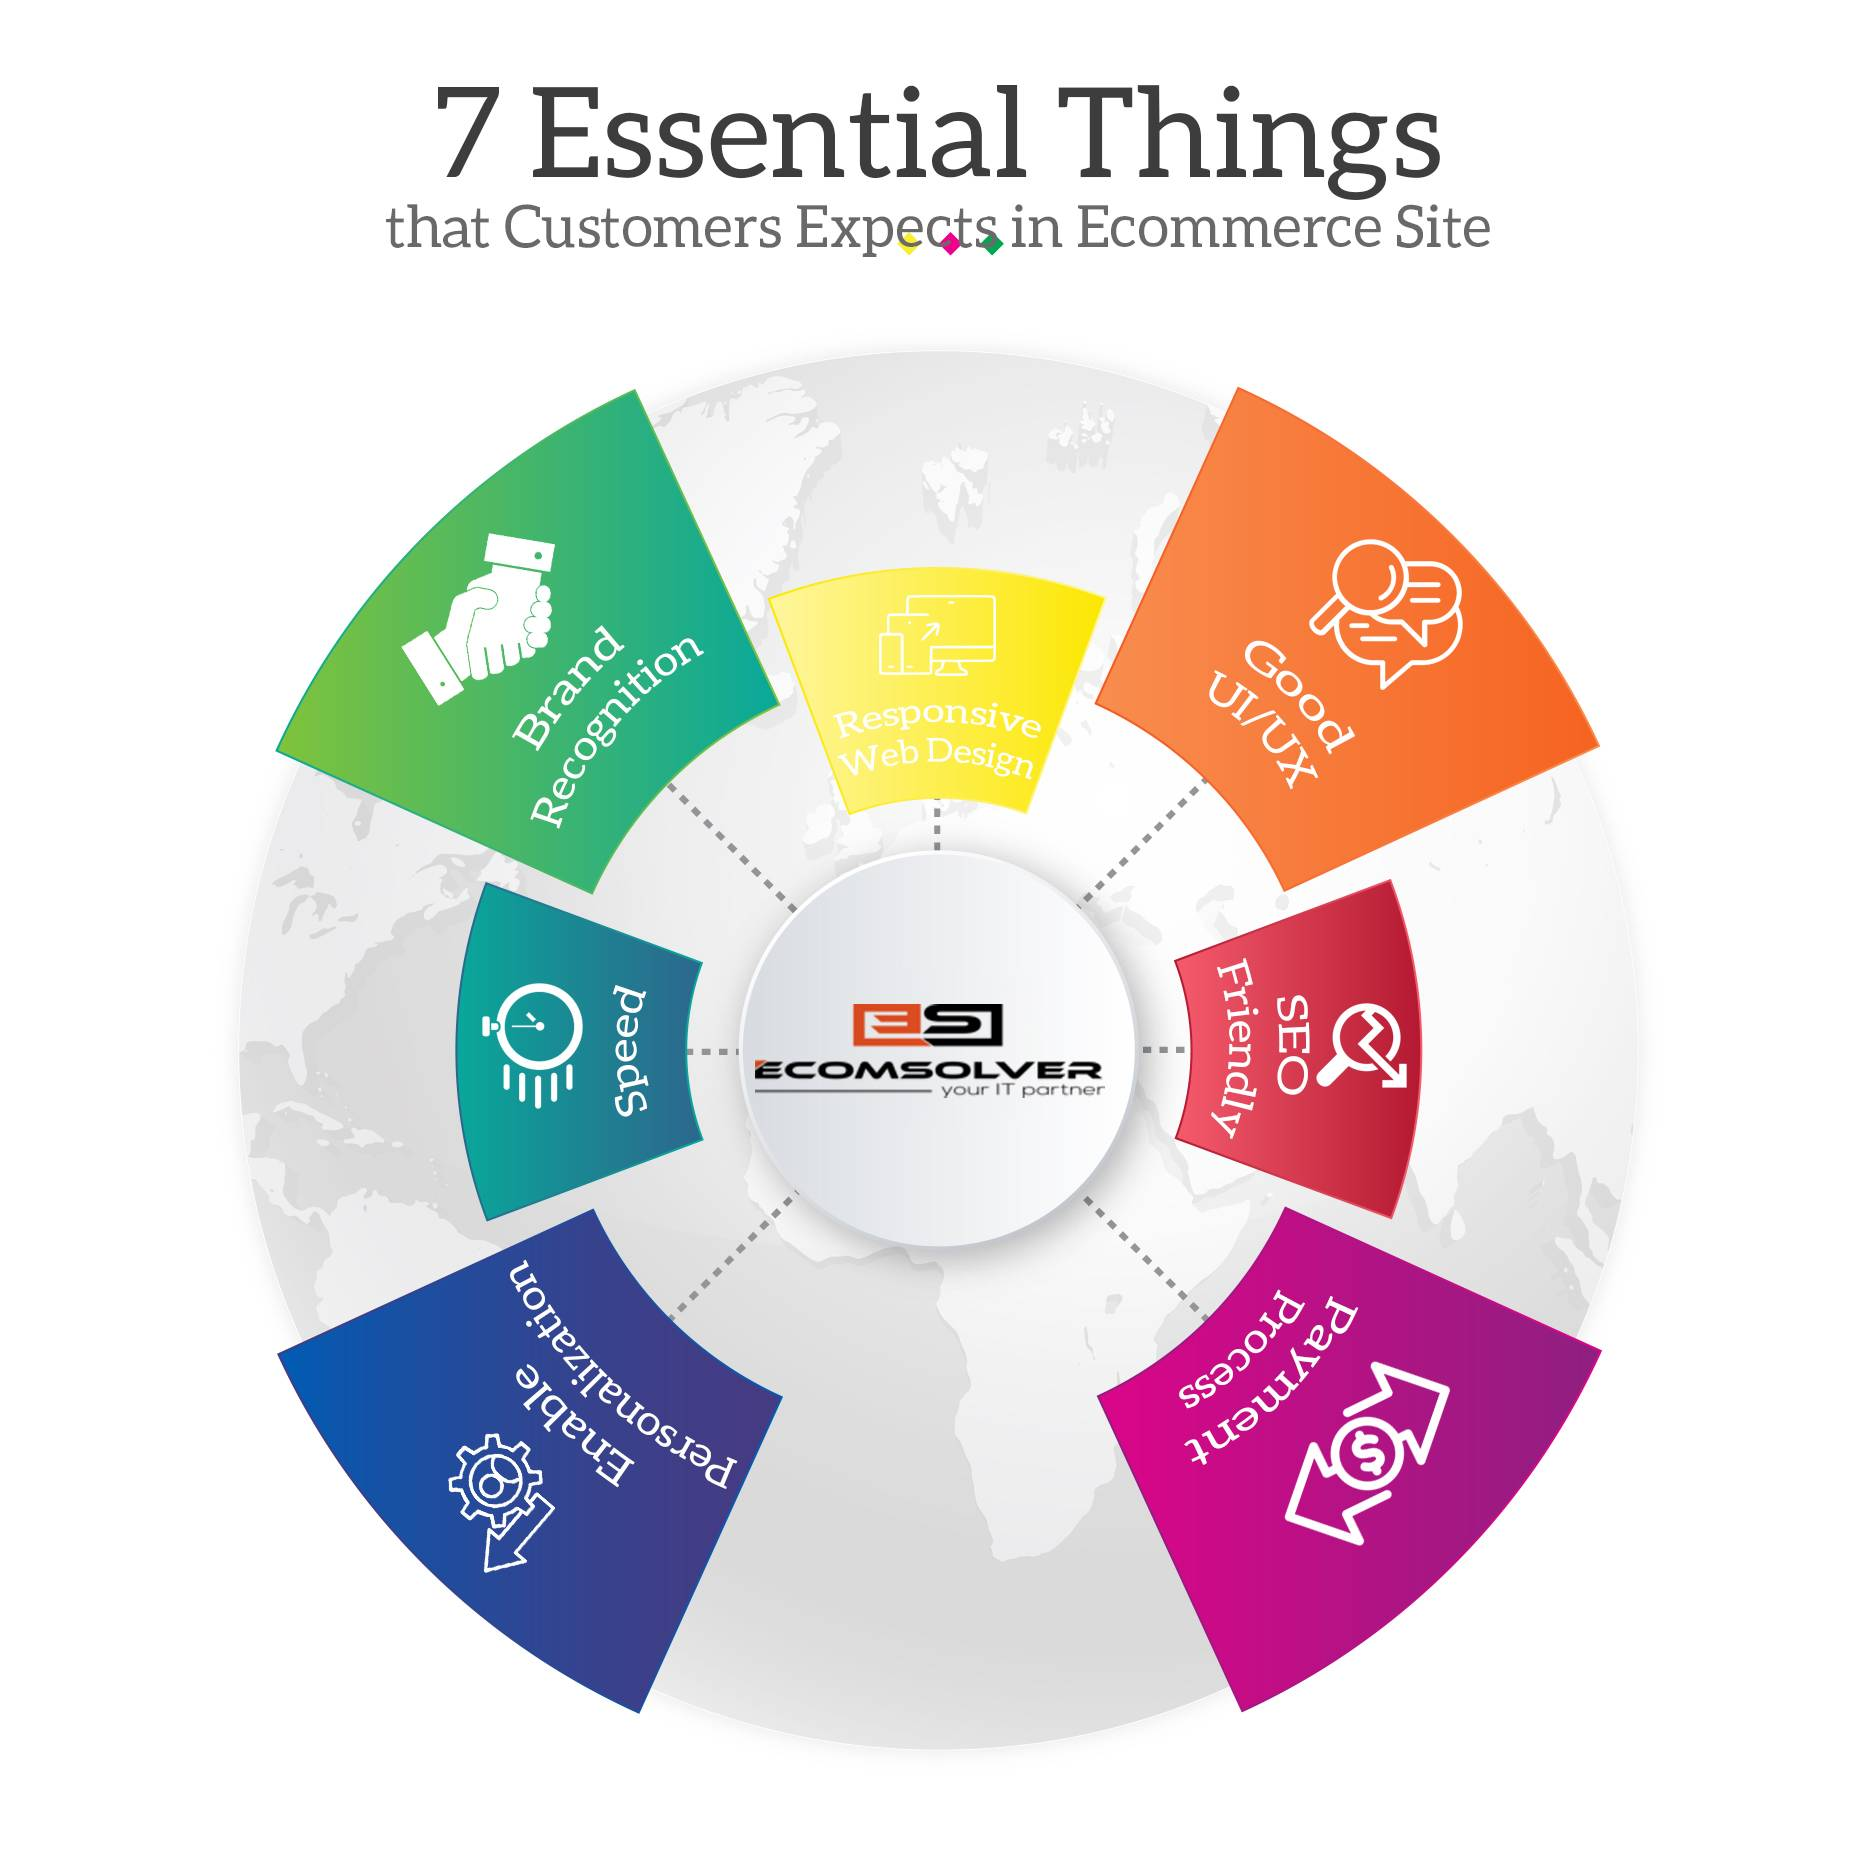 7 Essential Things that Customers Expect in Ecommerce Site